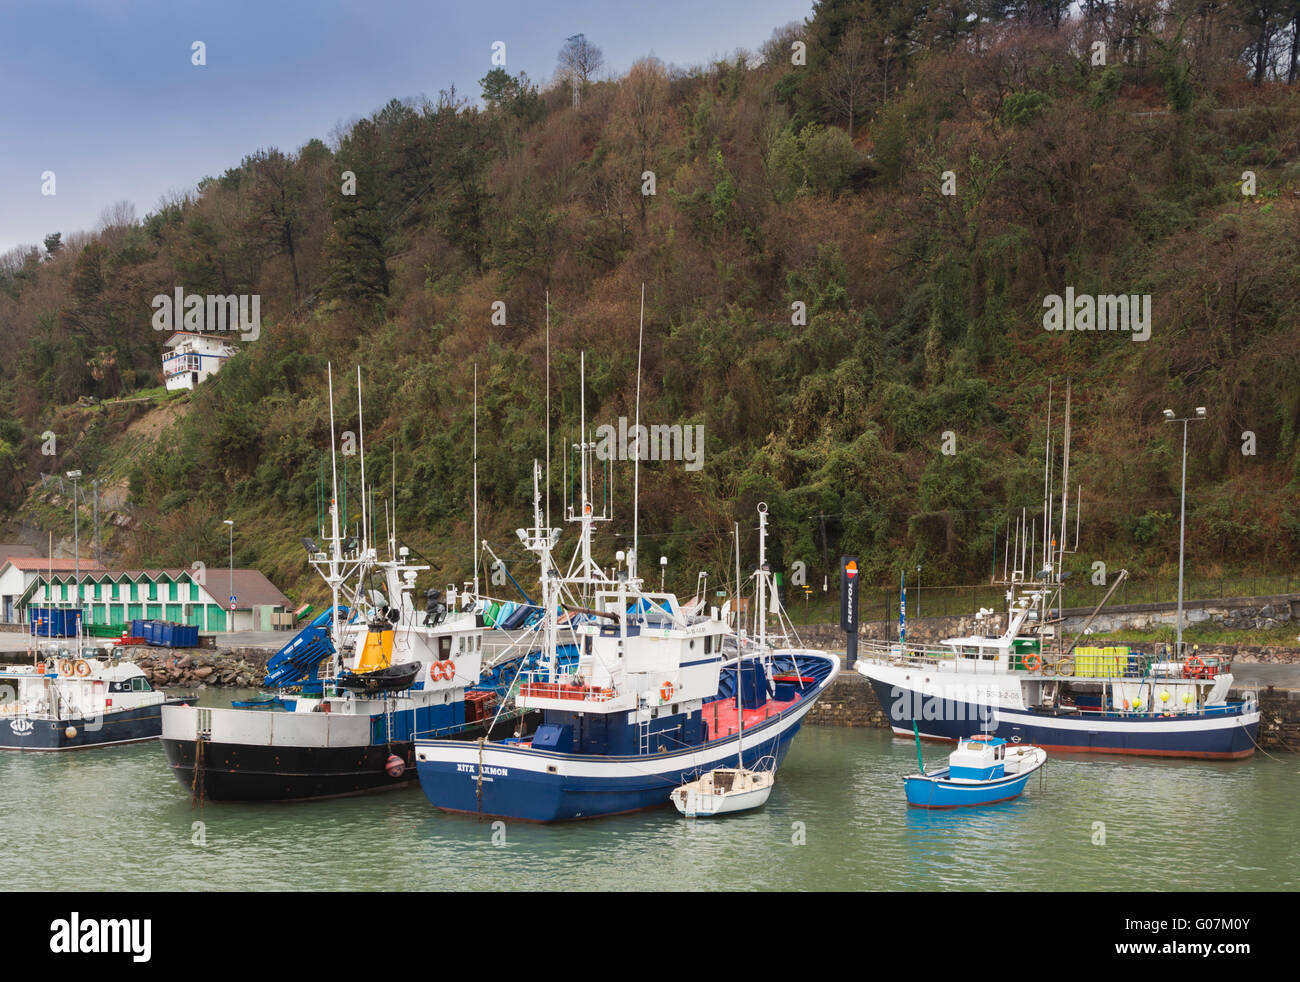 Hondarribia aka Fuenterrabía, Guipuzcoa Province, Basque Country, Spain.  Fishing boats in the harbour. - Stock Image